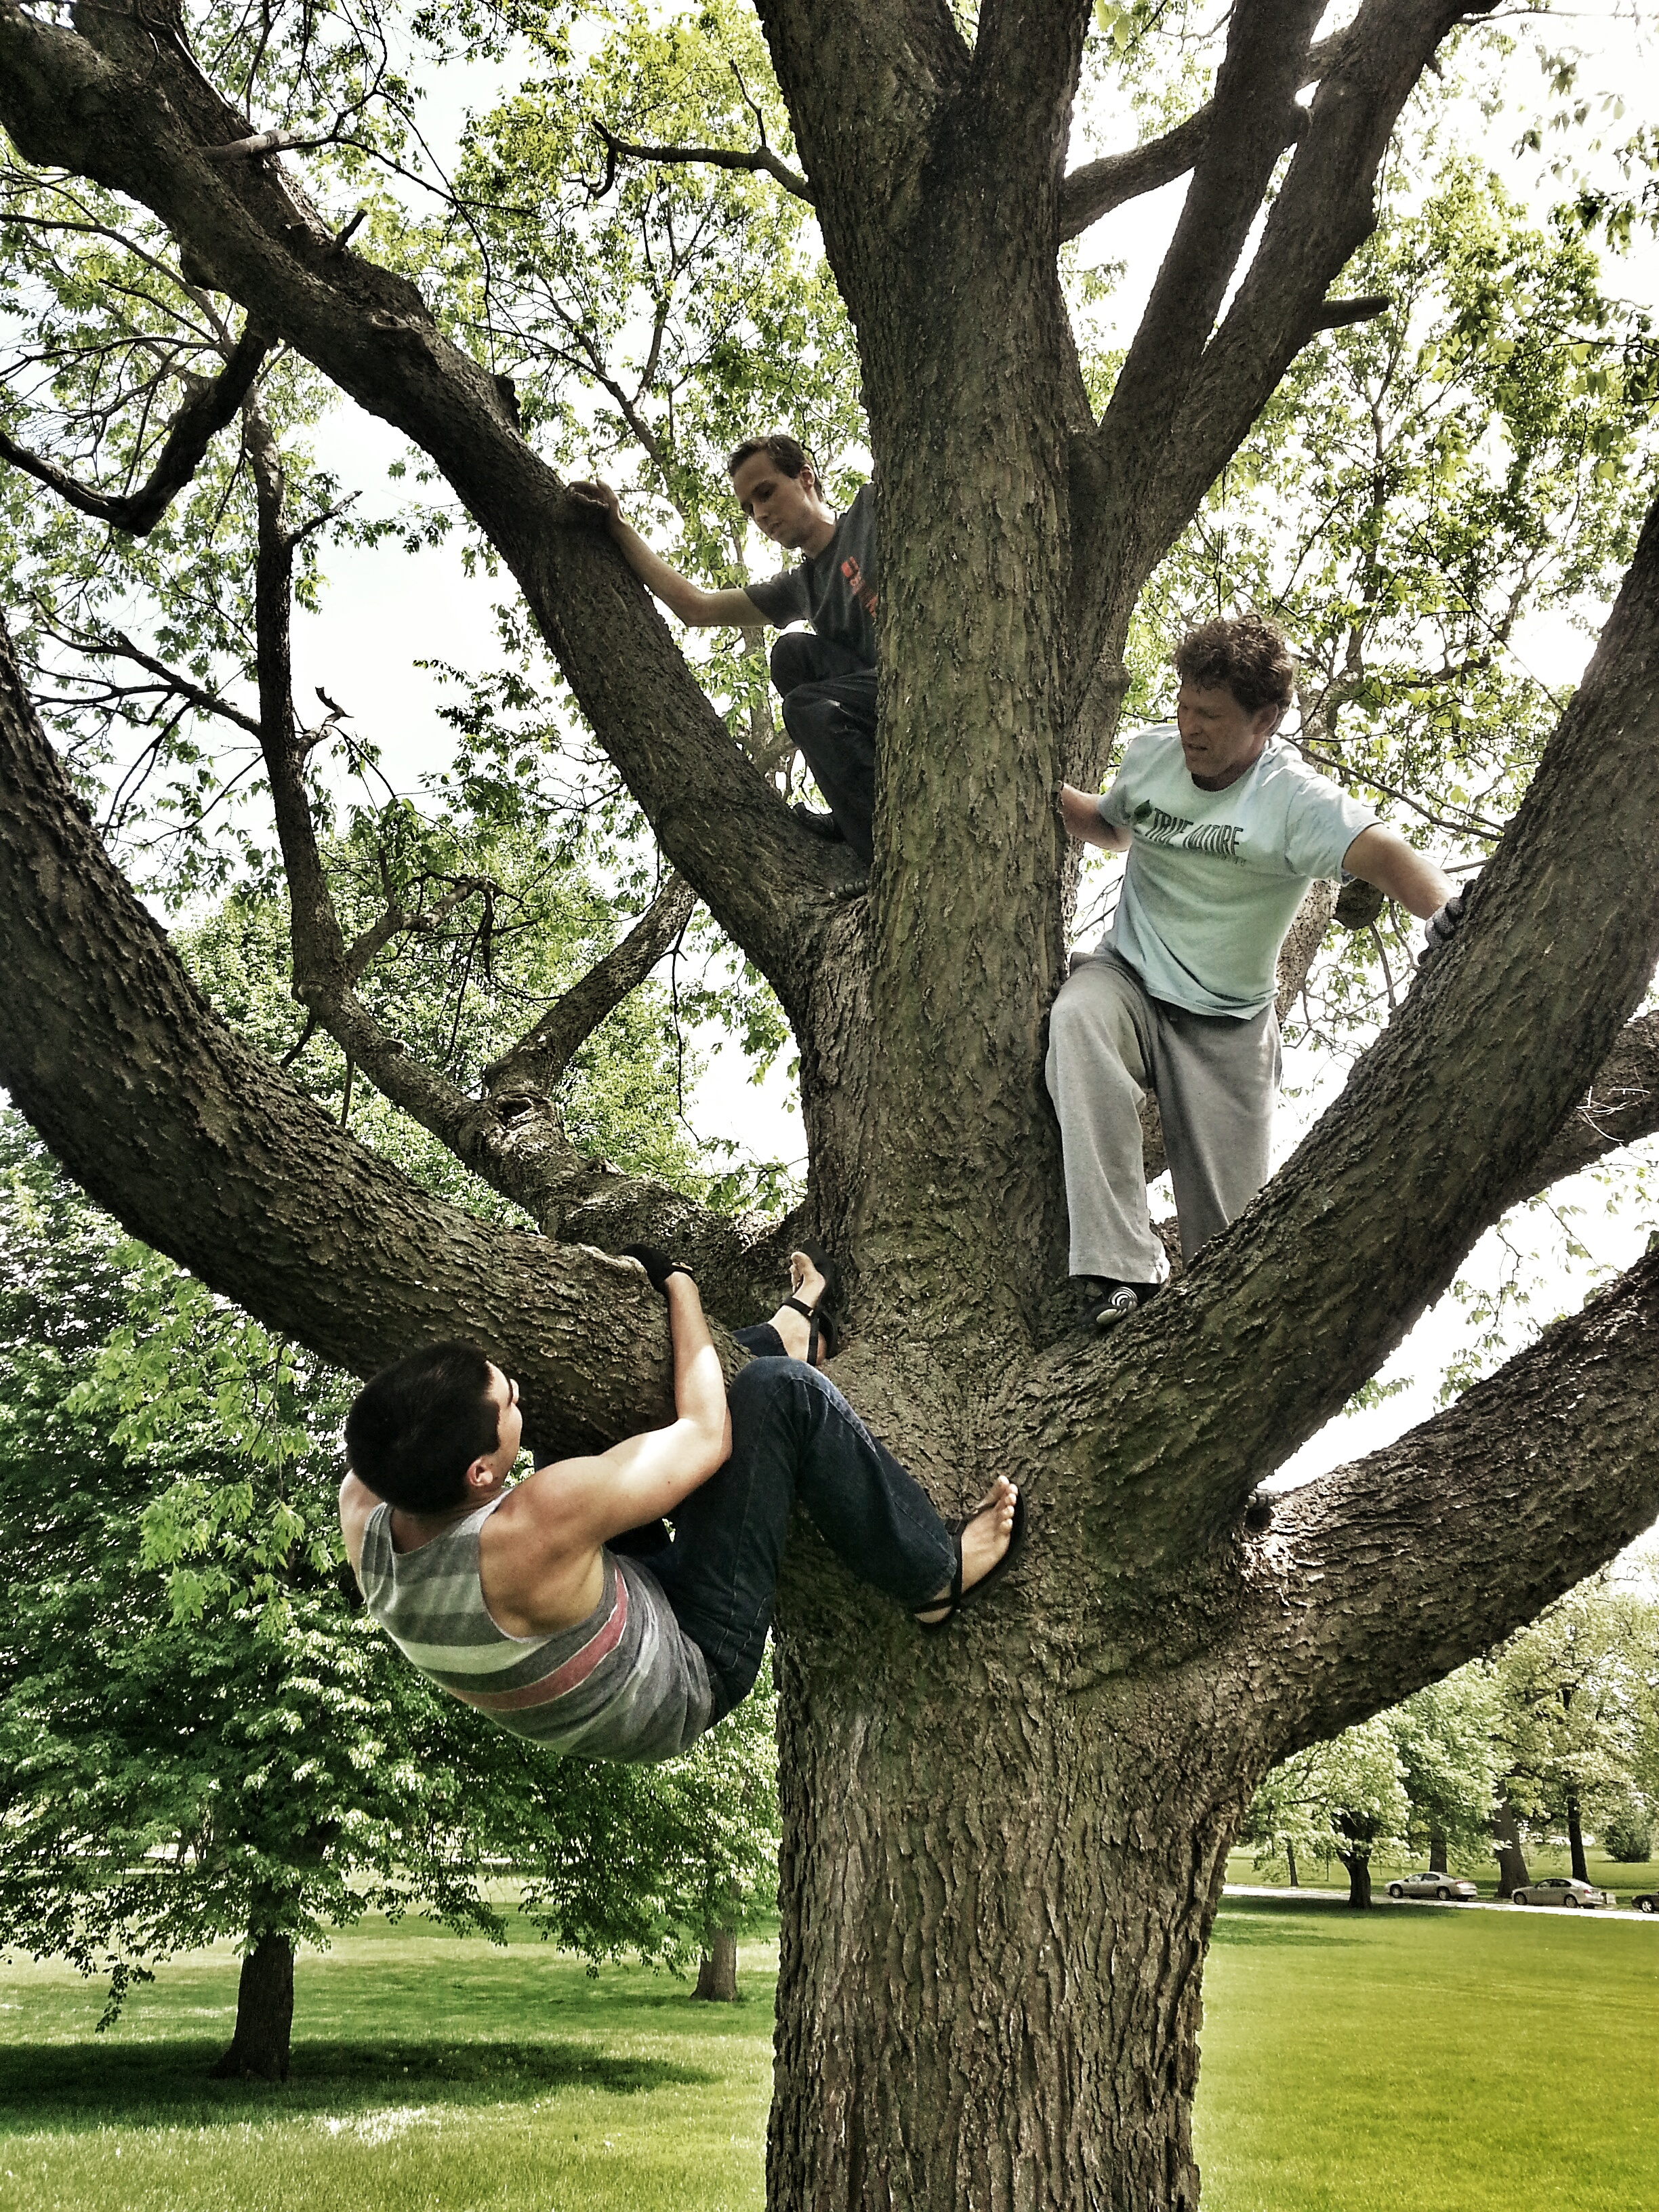 Playout with Des Moines Paleo - Tree Climbing